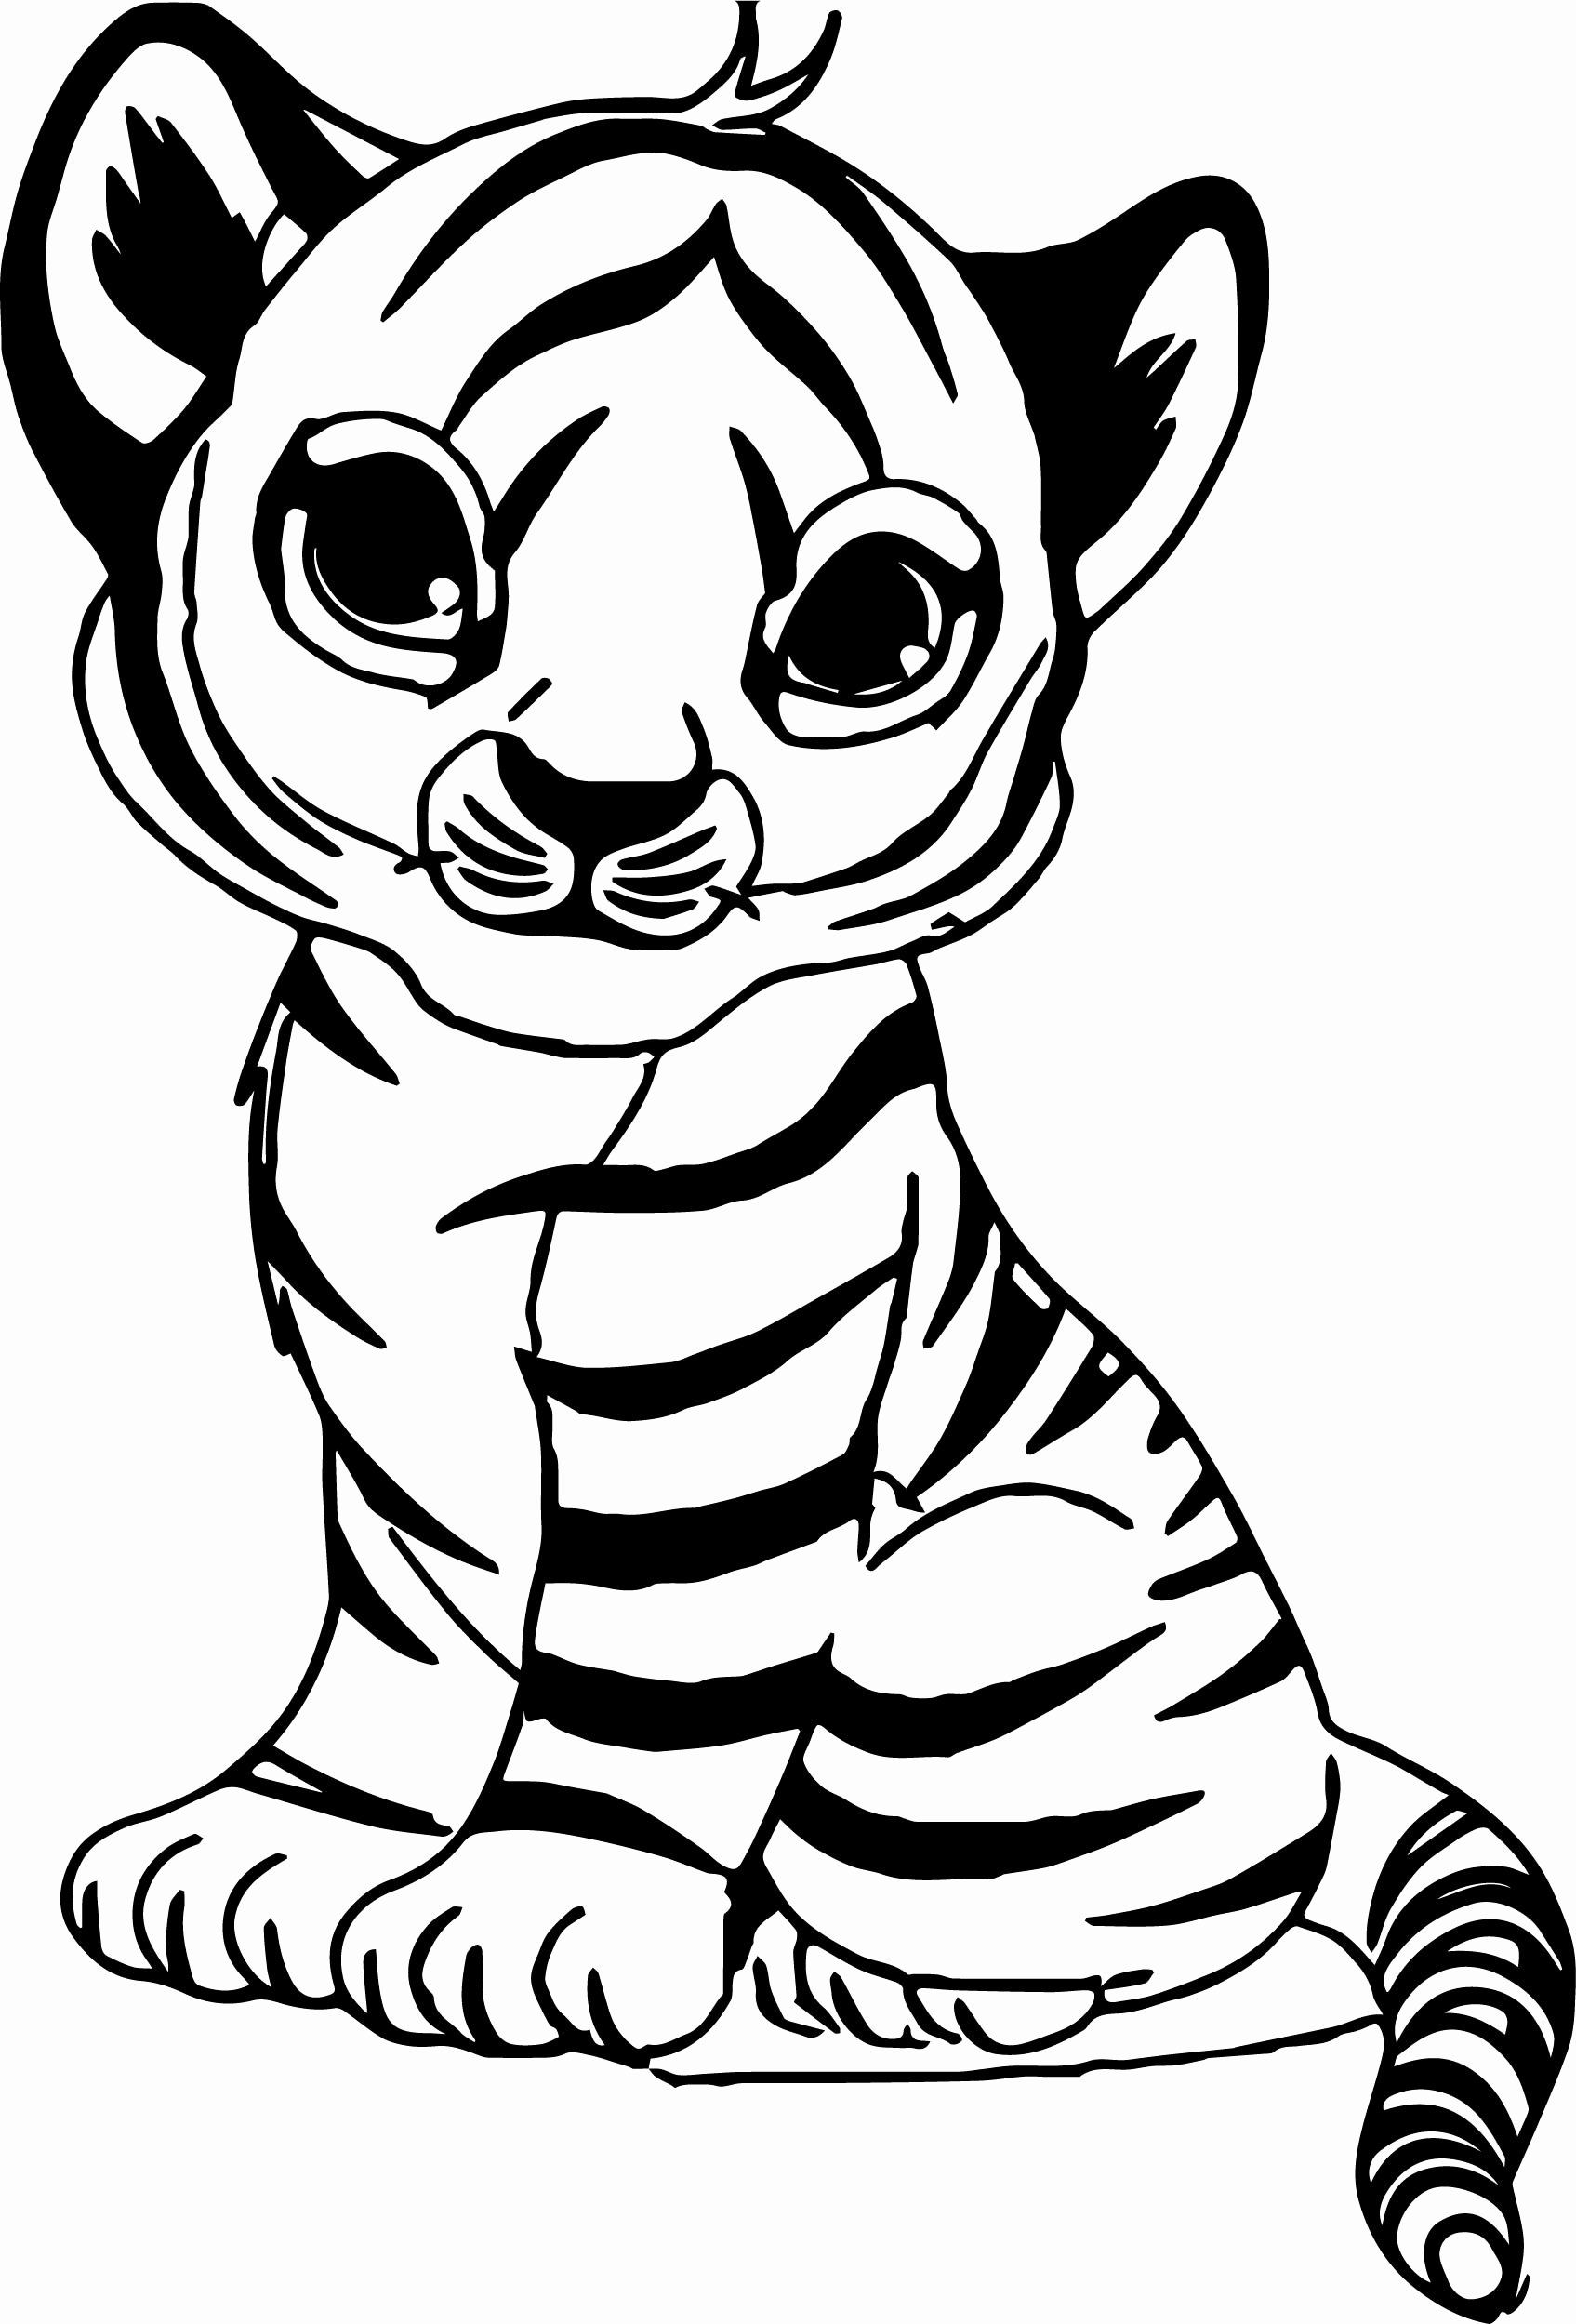 Cute Coloring Books Luxury Baby Tiger Coloring Pages Printable In 2020 Zoo Animal Coloring Pages Zoo Coloring Pages Cartoon Coloring Pages